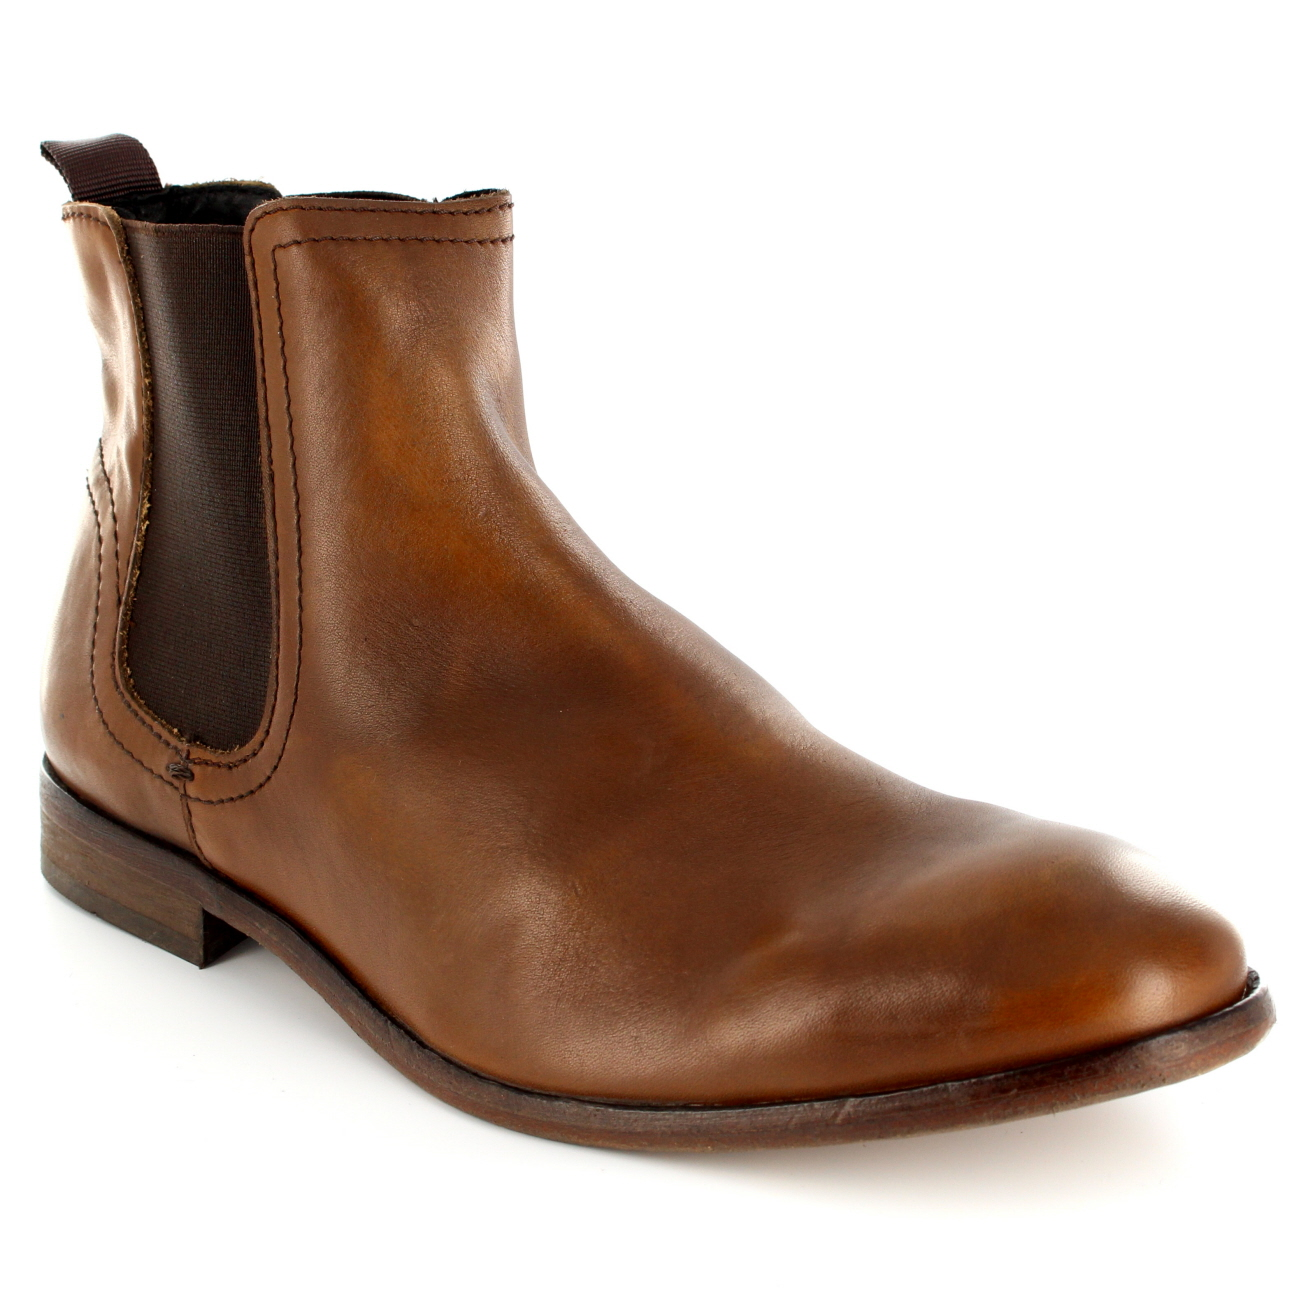 H By Hudson Patterson Chelsea Boots